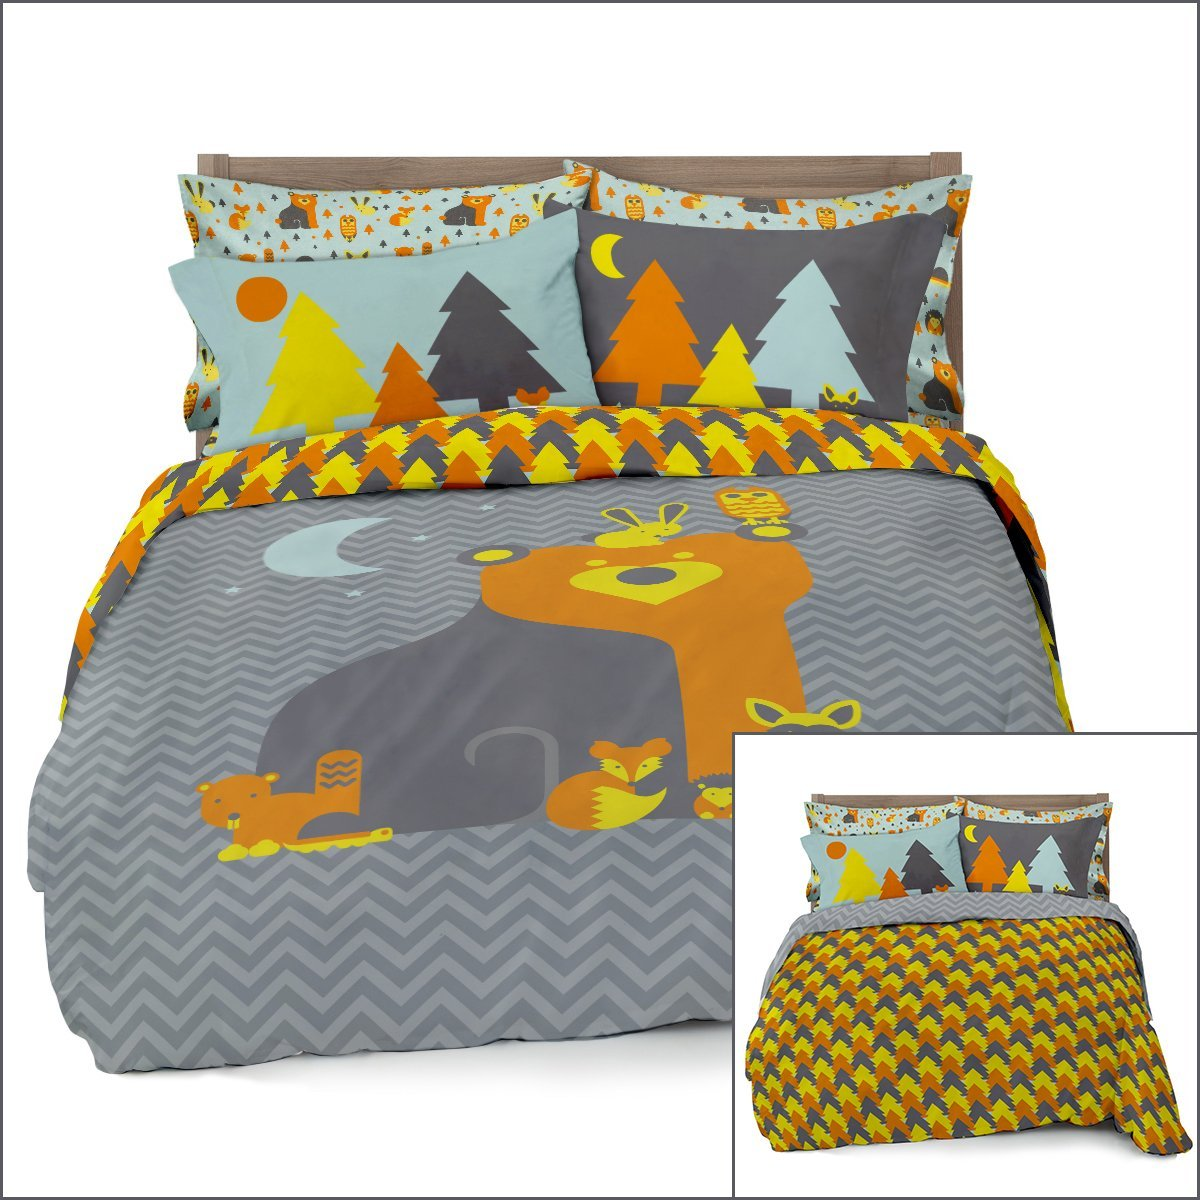 Where The Polka Dots Roam Duvet Cover Kids Bedding Reversible with Pillowcases - Various Print Designs - Full Queen and Twin Size